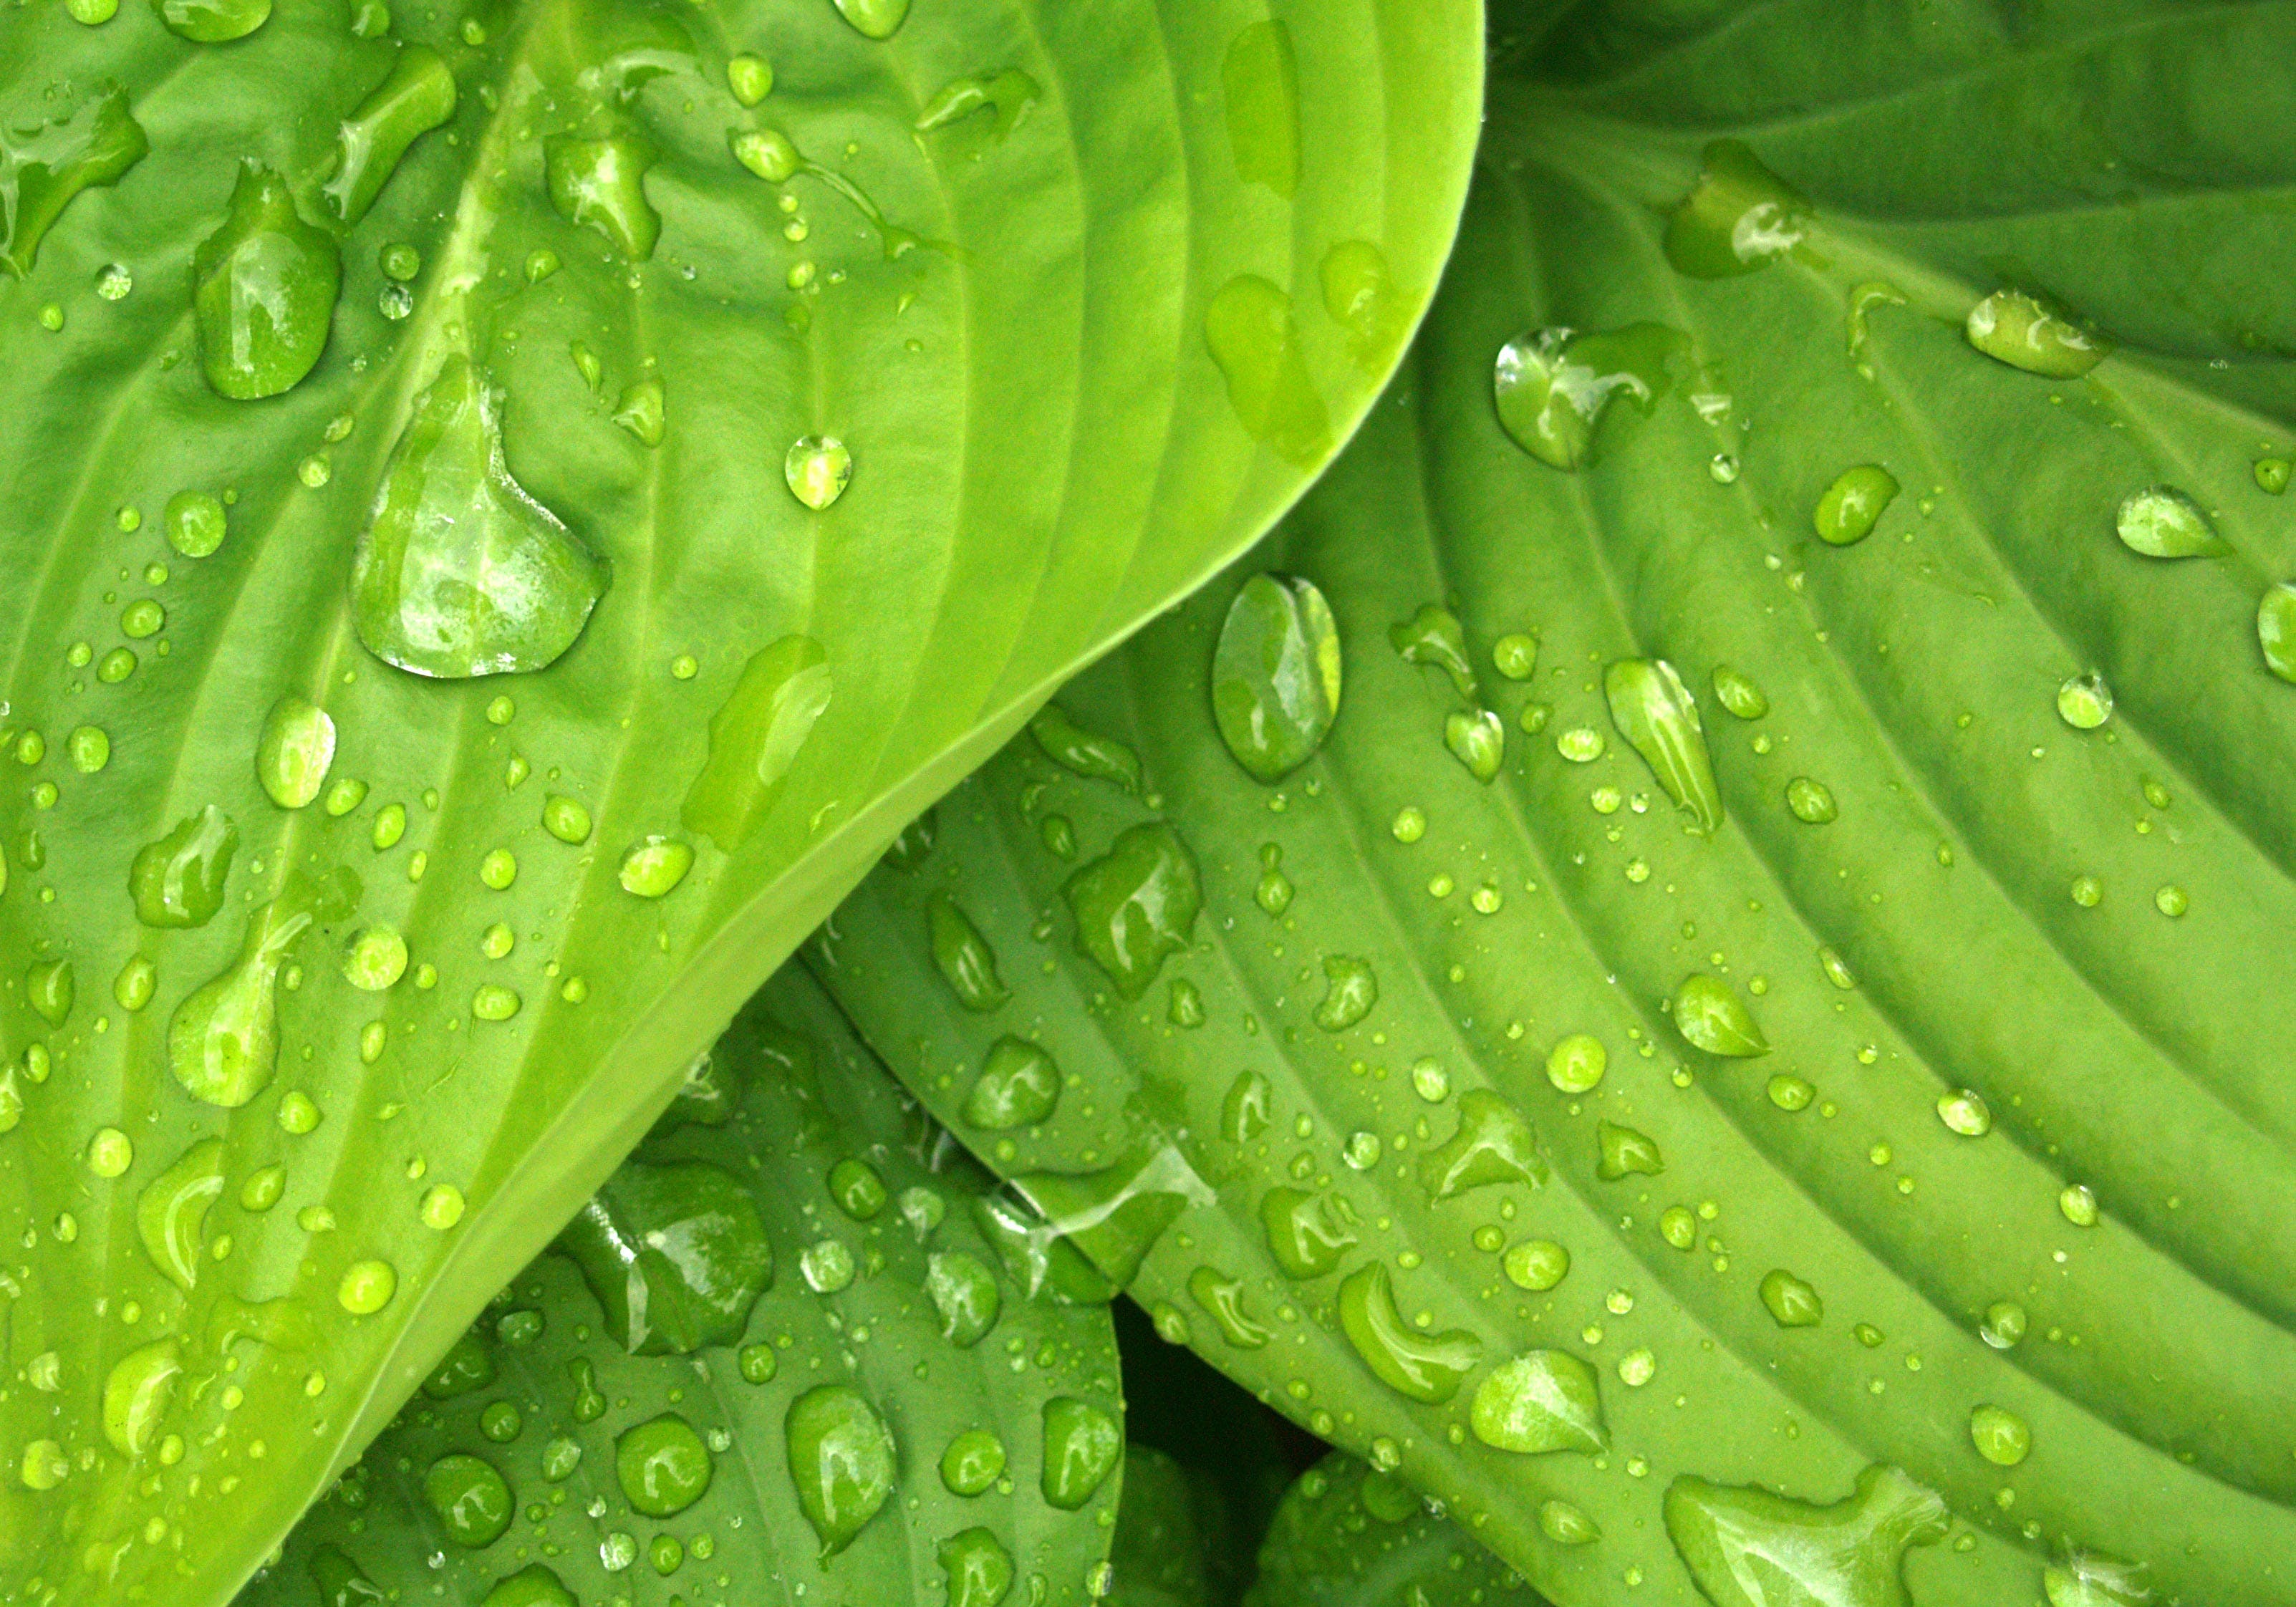 Water Dews on Green Leaves